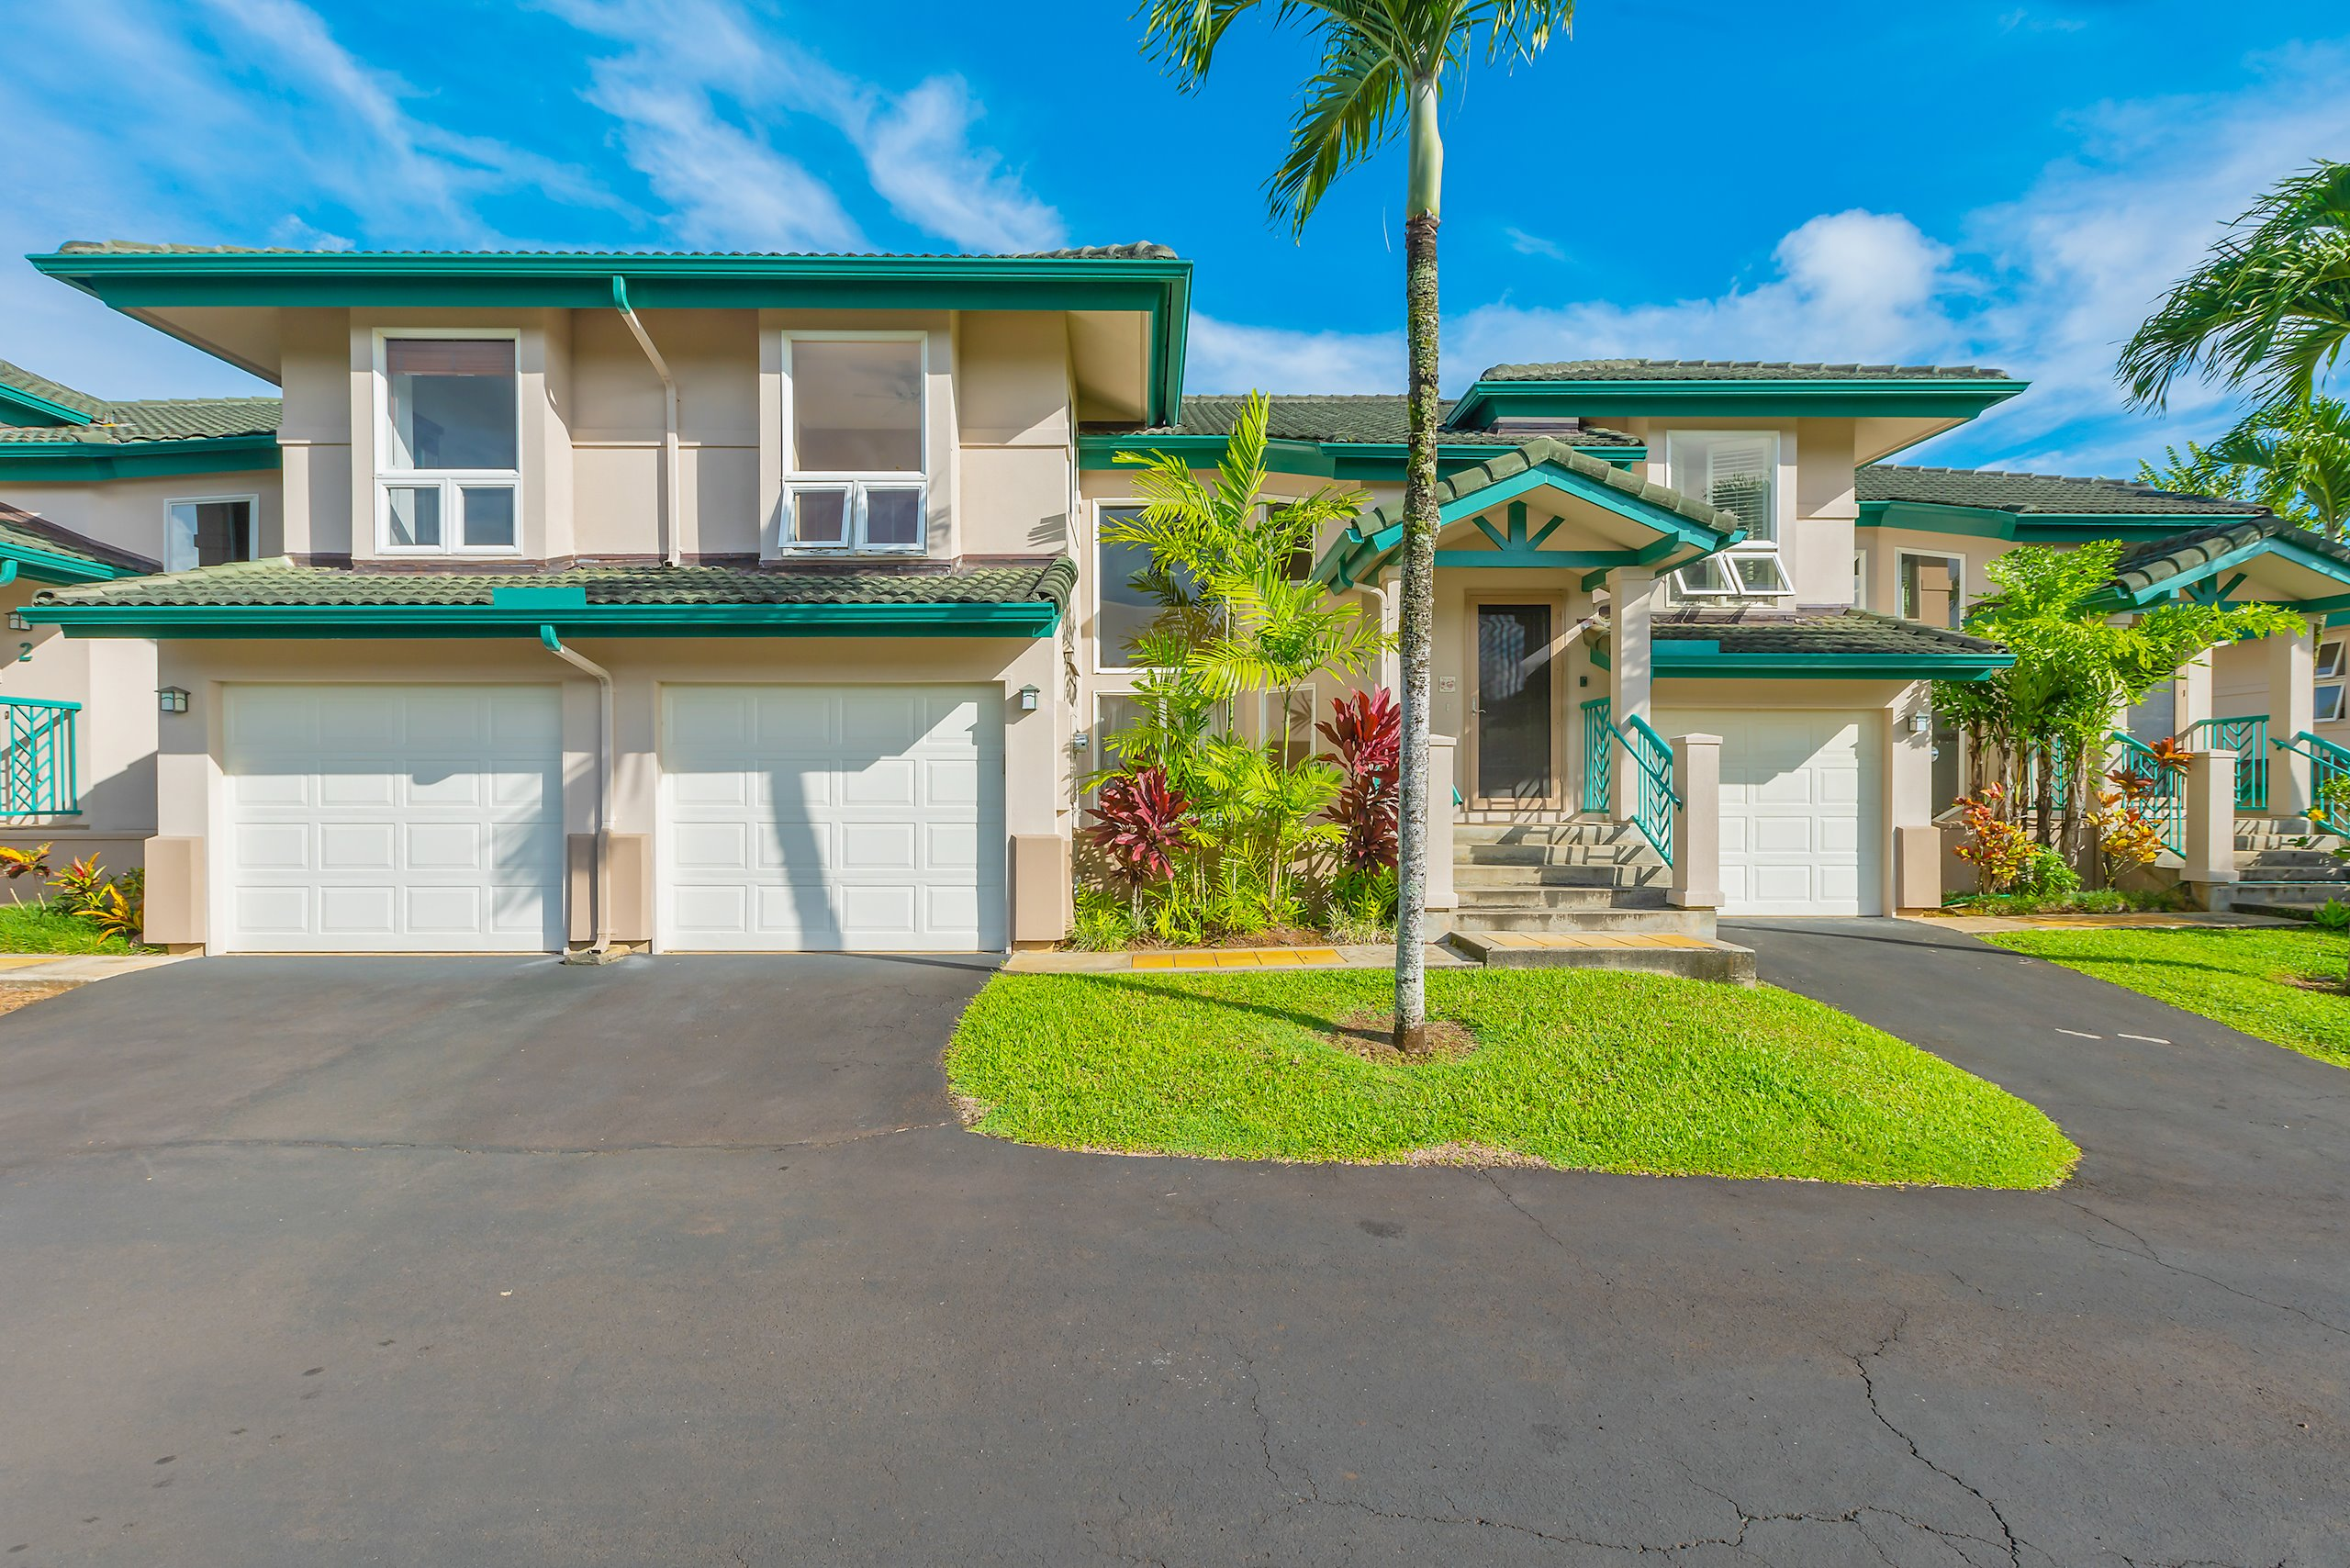 Expansive 3 bedroom 3 bath luxury townhome with beautiful views of the Prince Golf Course and a peek of the ocean.<br><br>This exceptional townhome is walking distance to the Princeville Shopping Center, dining, and world class golf.<br><br>Other features include:<br>*Large Master Suites*<br>*Professionally landscaped grounds*<br>*Heated pool*<br>*Gated entry*<br>*Vaulted ceilings*<br>*Granite slabs in Kitchen and bathrooms*<br>*Custom paint*